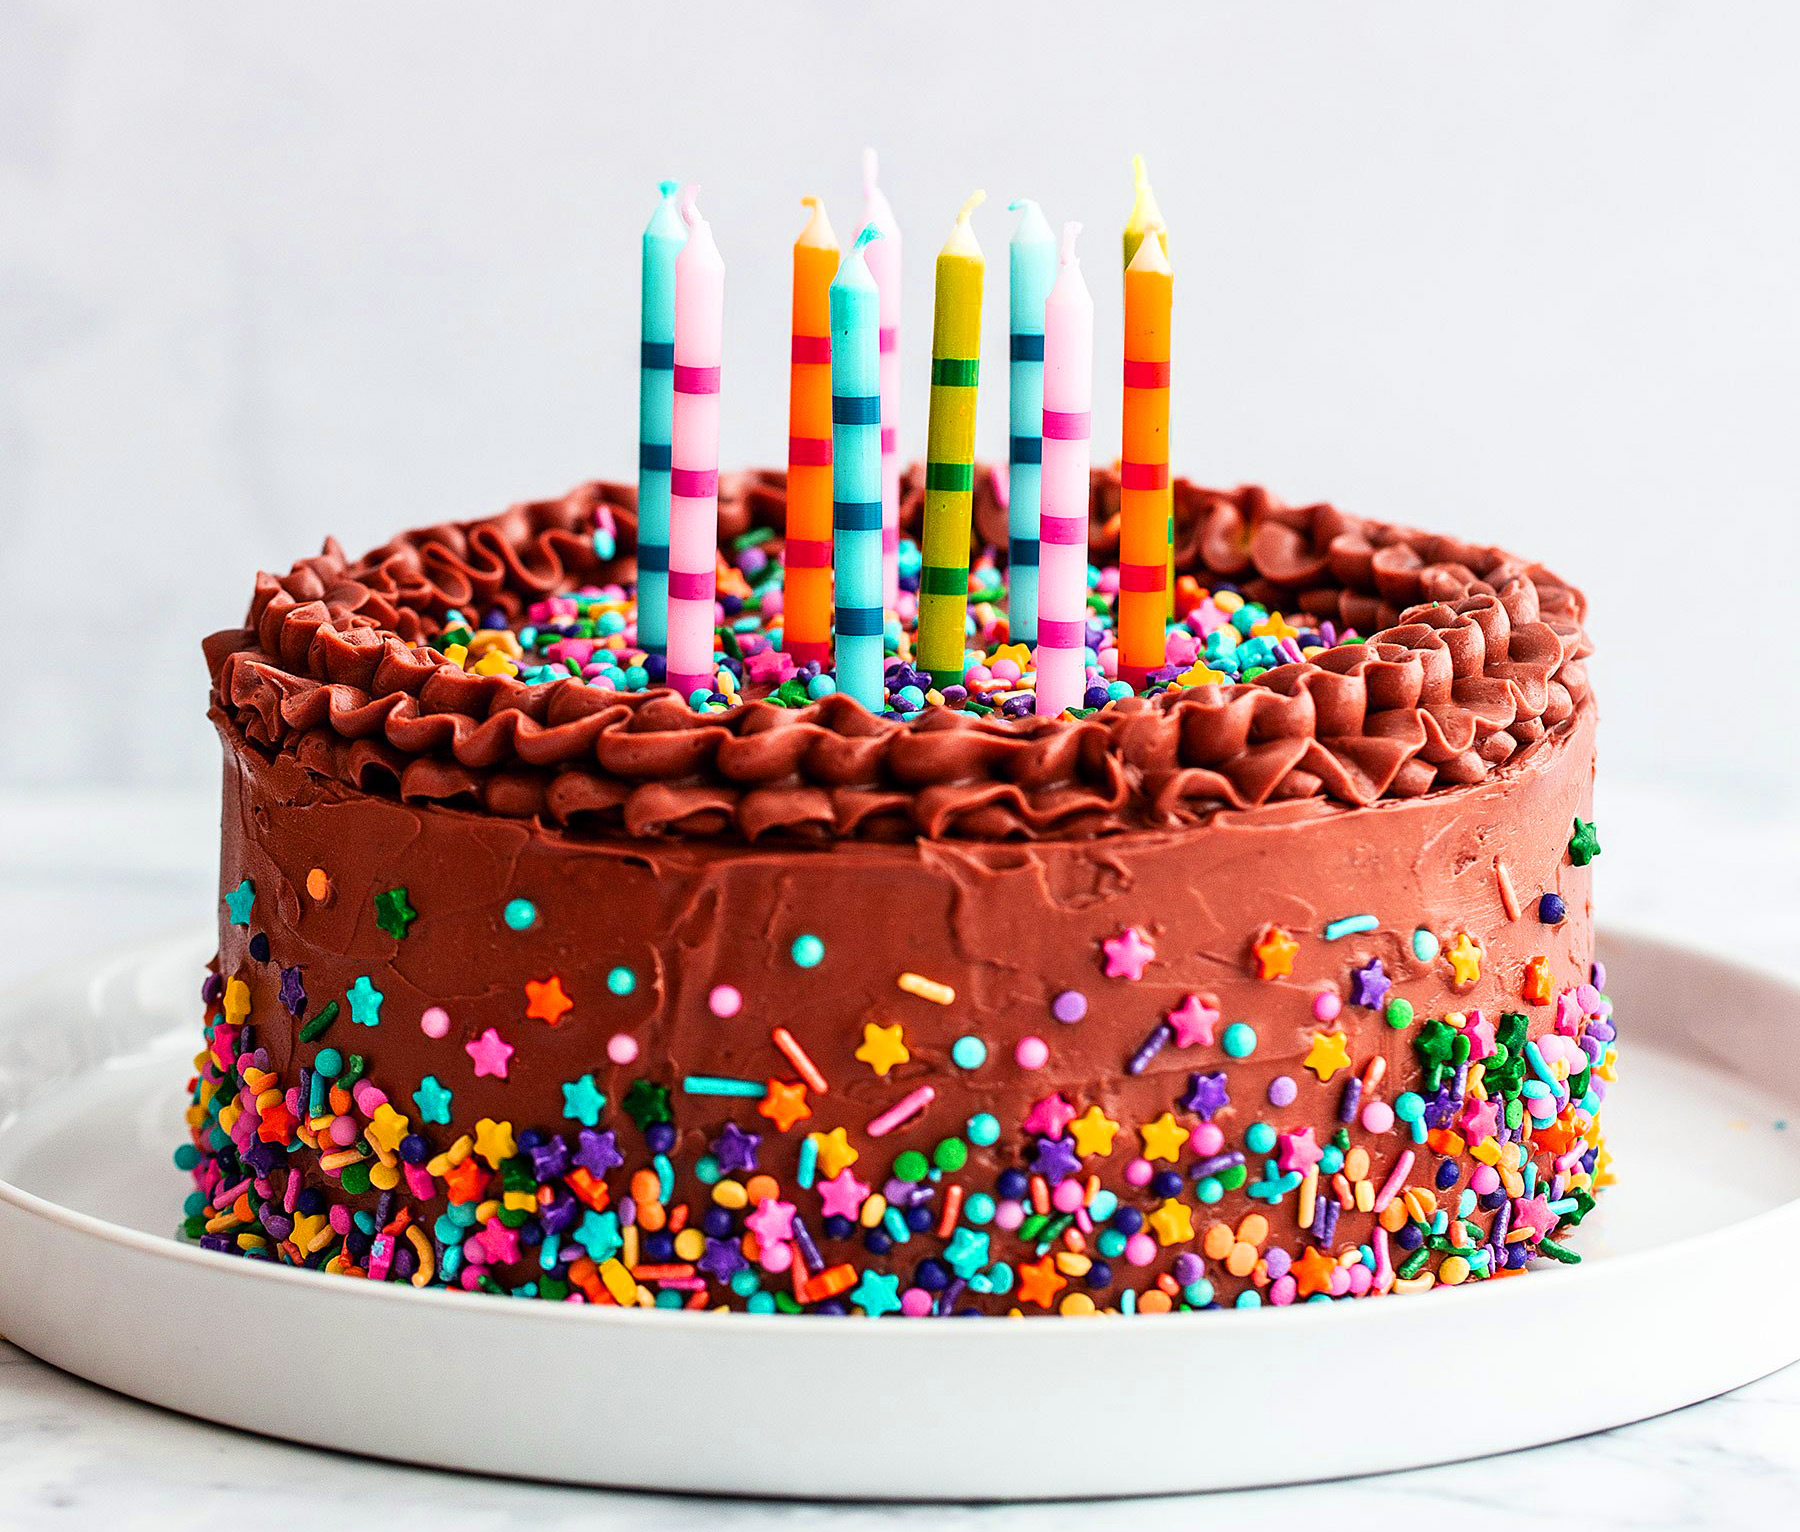 Happy Birthday Cake Images pictures photo hd download